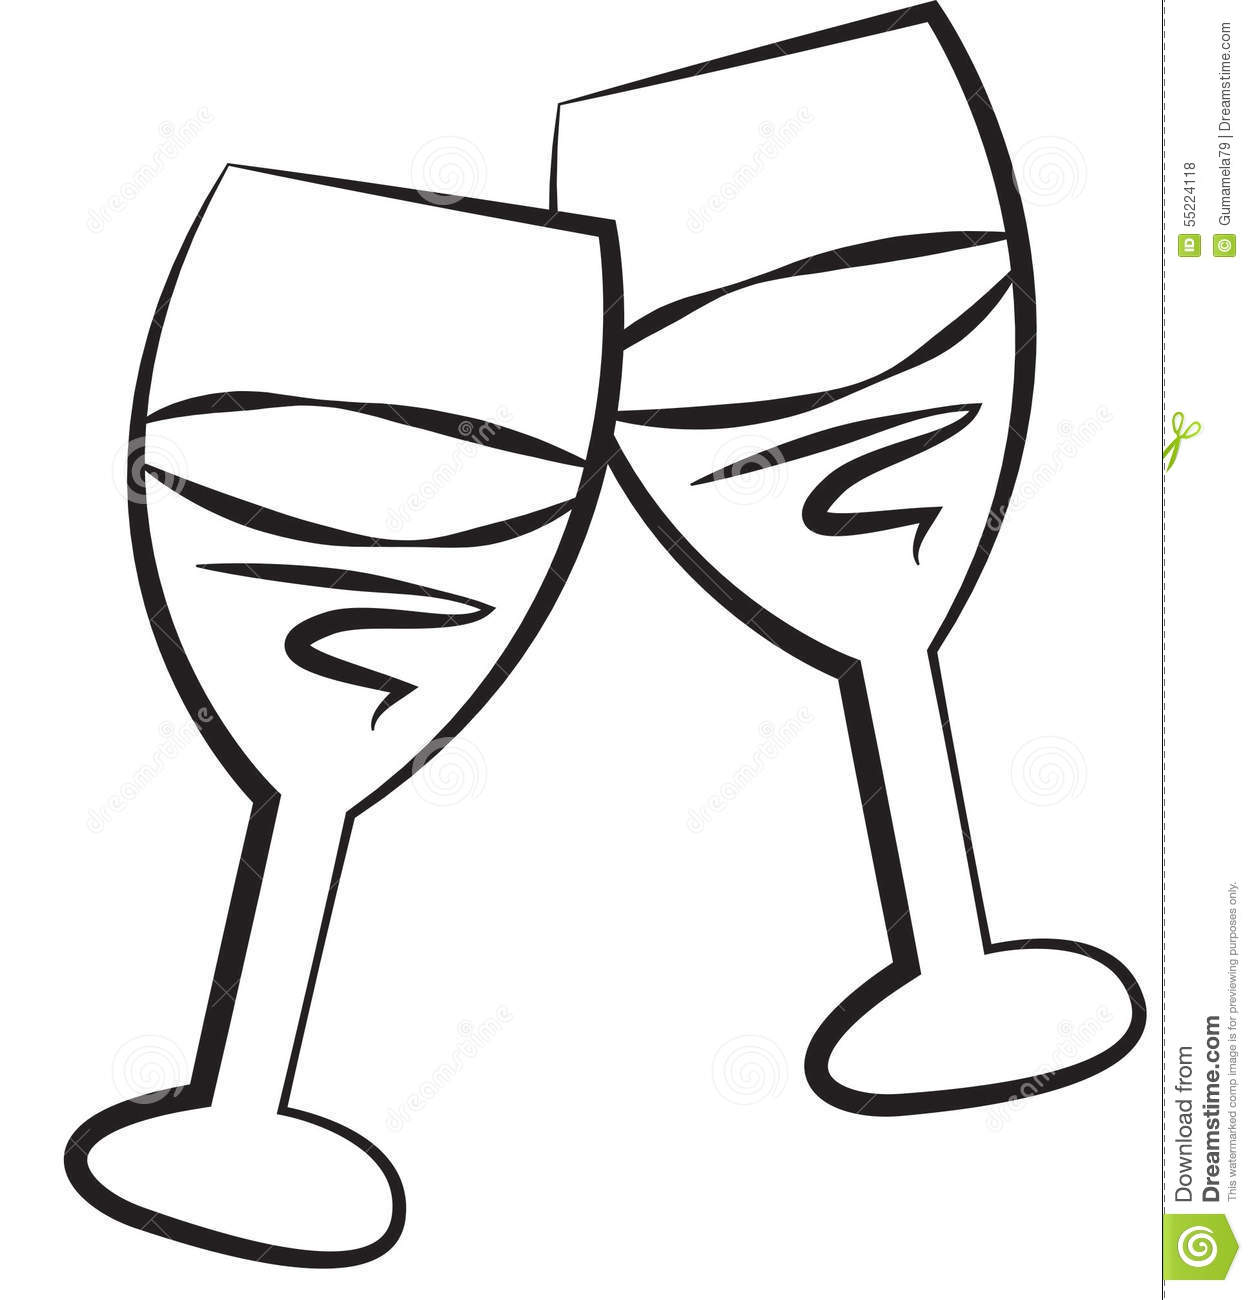 Stock image wine glass stock illustration image 55224118 for How to draw on wine glasses